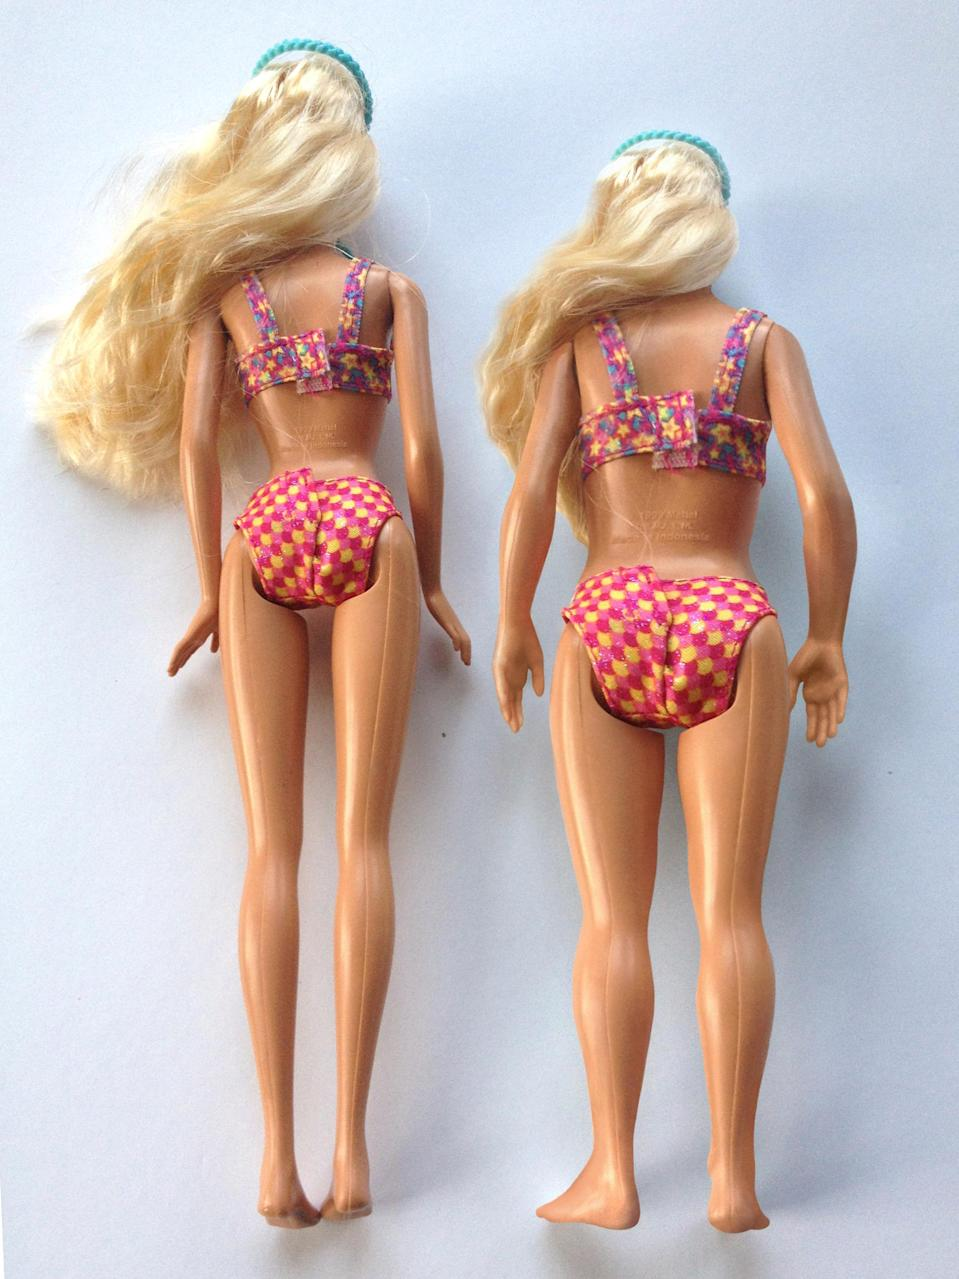 """<div class=""""caption-credit"""">Photo by: Nickolay Lamm</div>Barbie at a human scale, Lamm said, would have the following unrealistic measurements: 69 inches tall with a 36-inch bust, an 18-inch waist, 33-inch hips, a 22-inch head circumference, and a 9-inch neck circumference."""